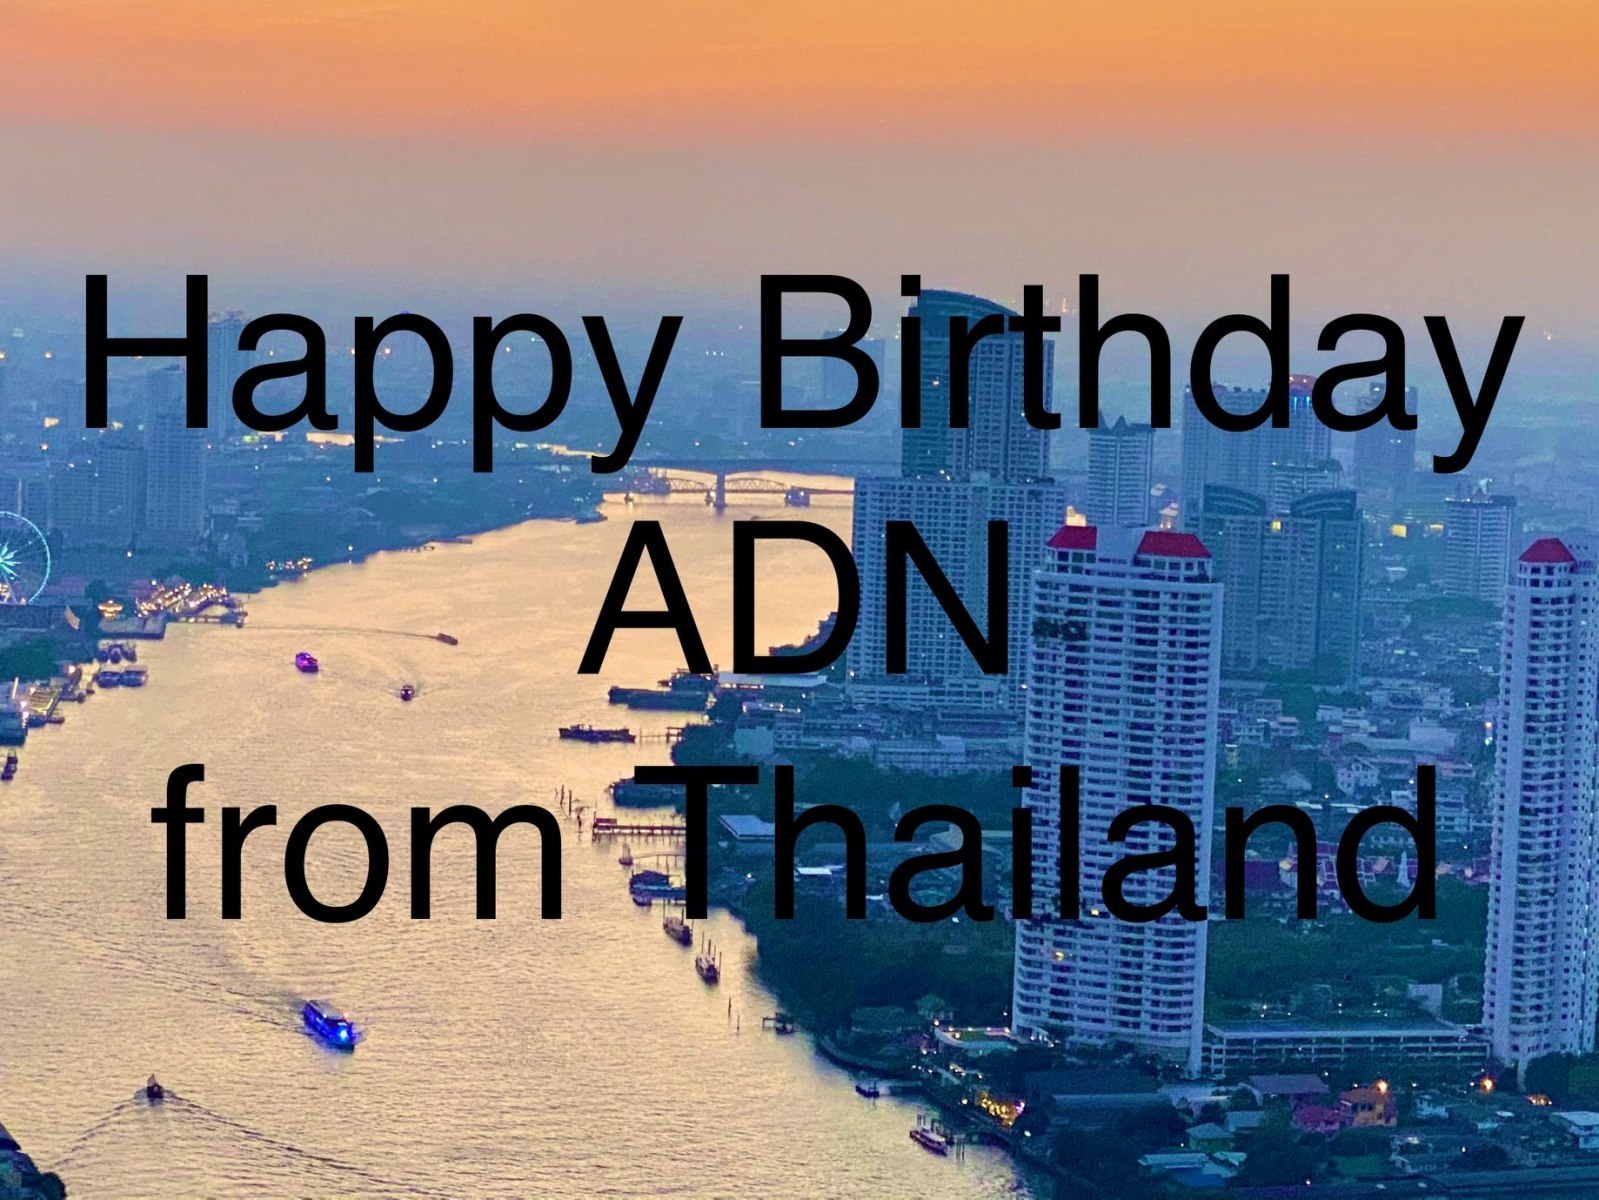 Birthday Wishes from Thailand